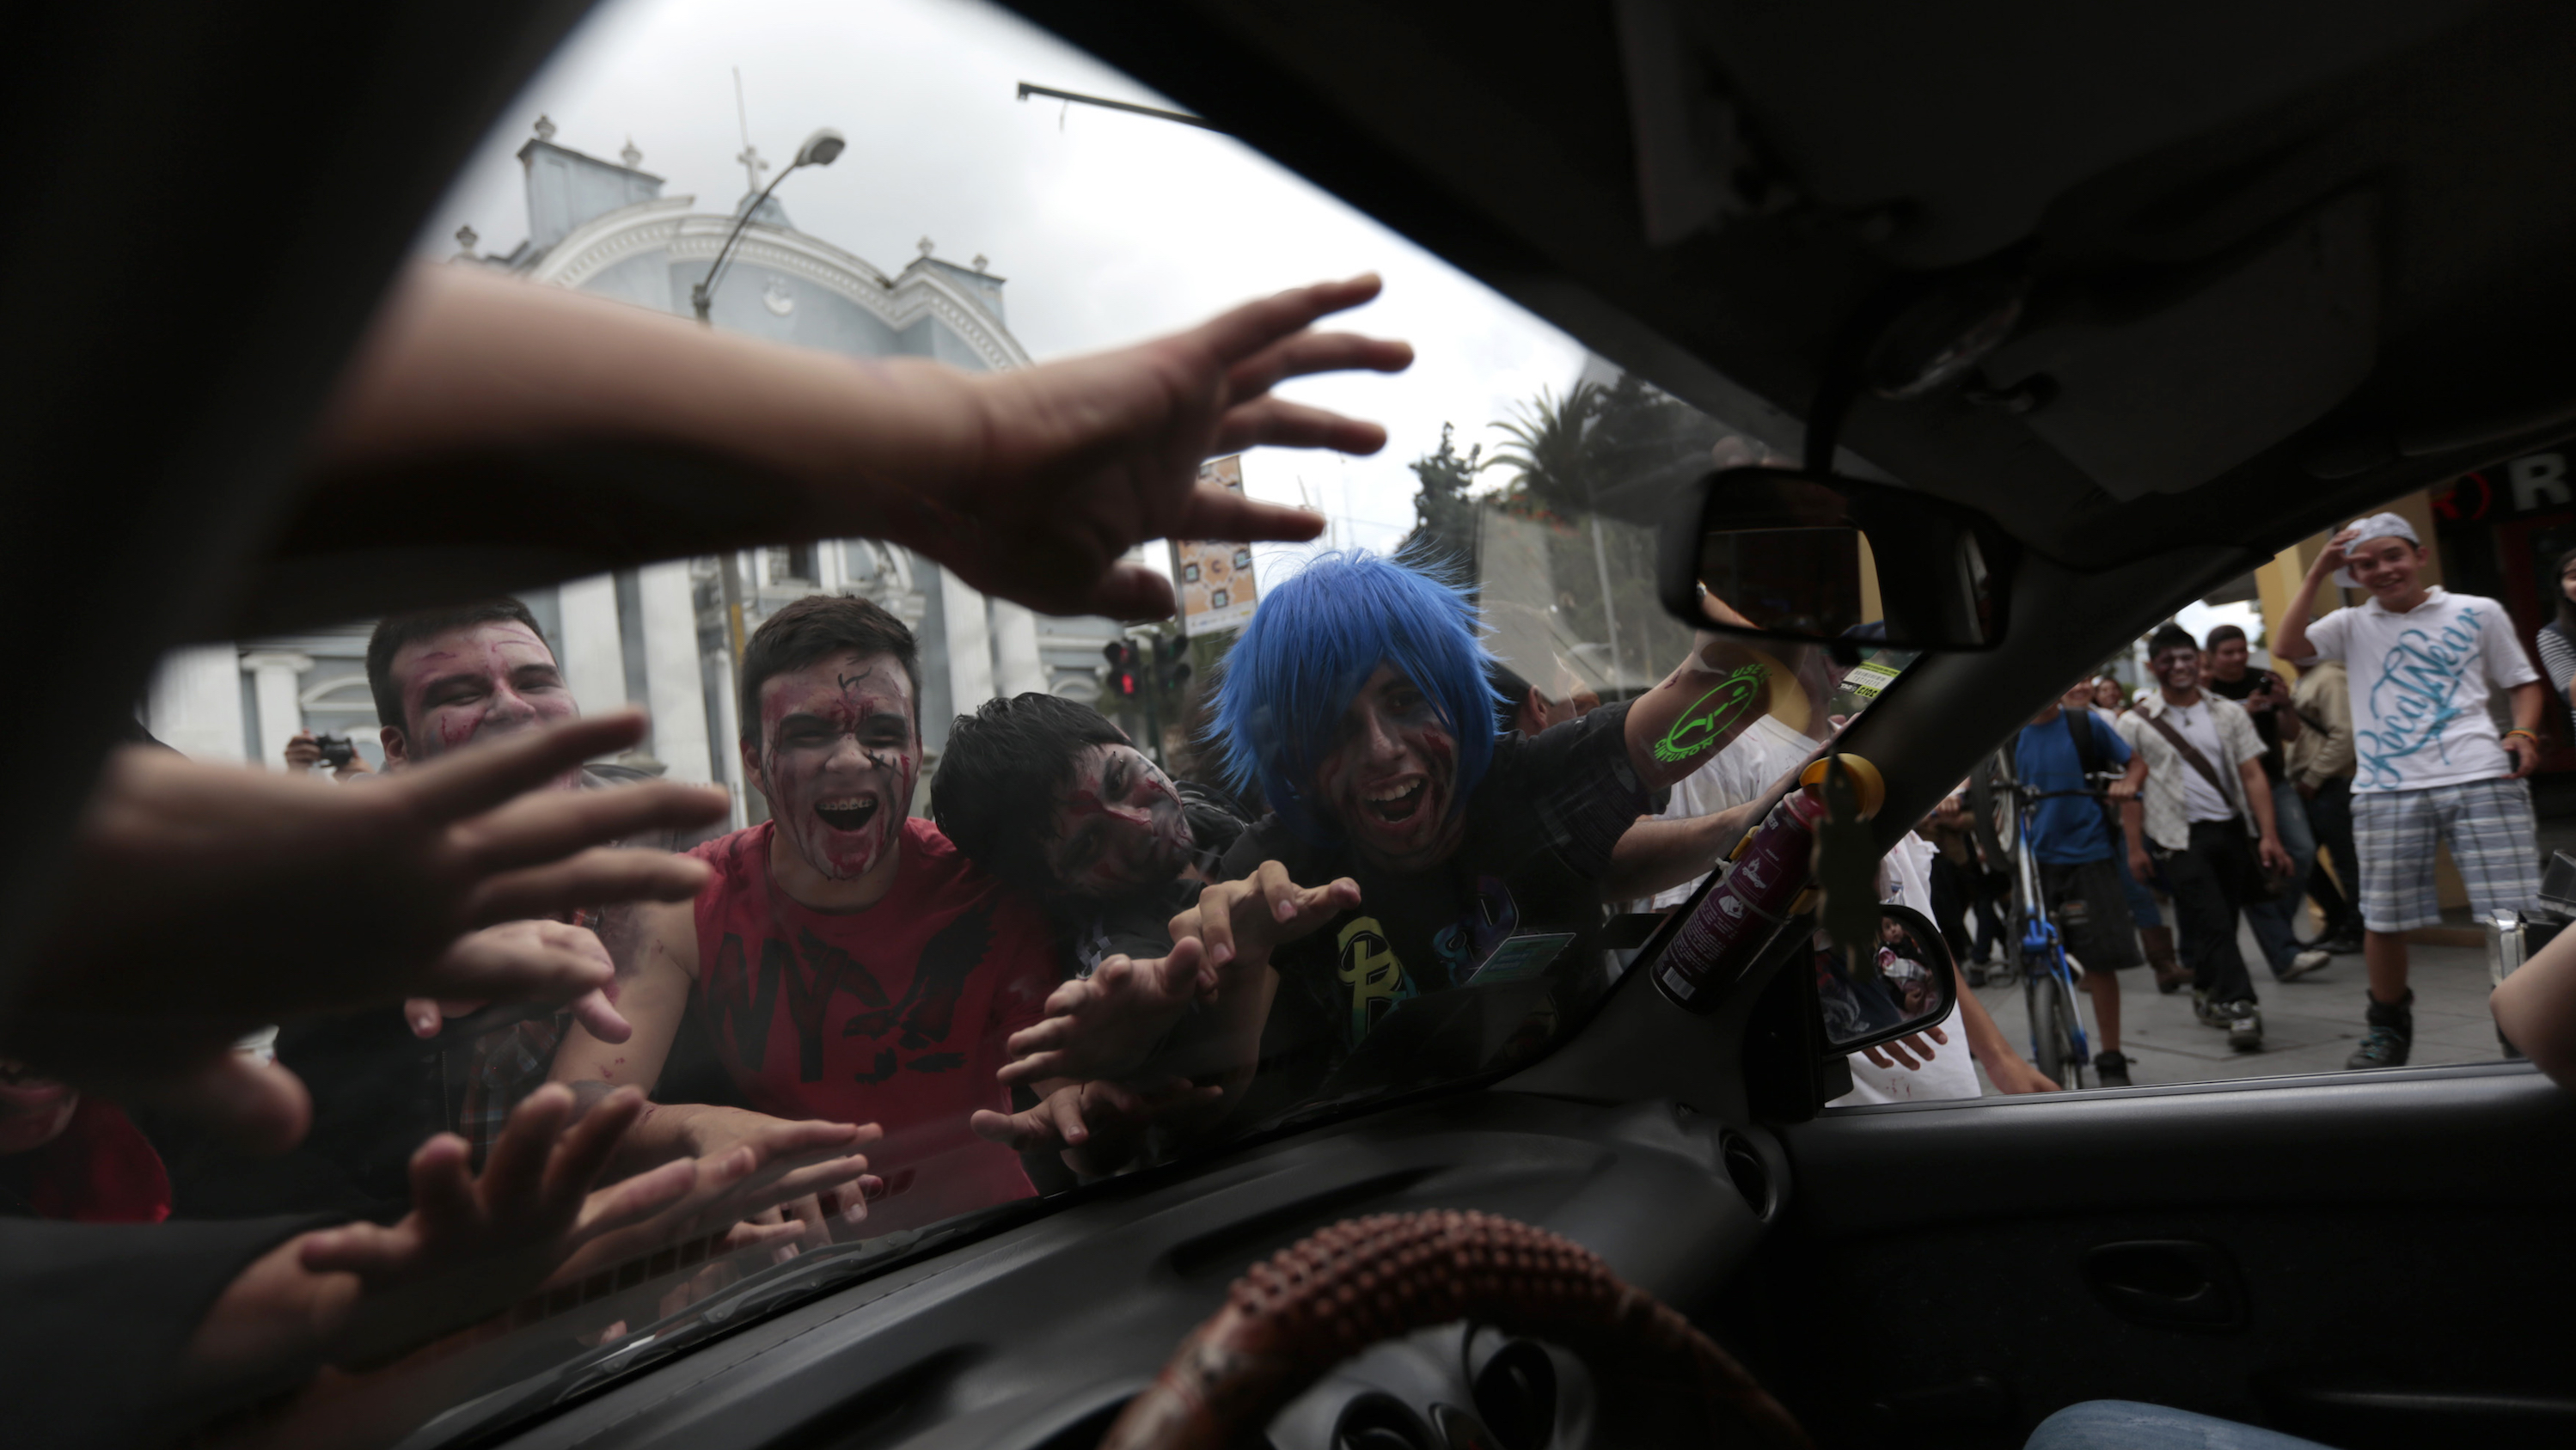 People dressed as zombies crowd a car during a Zombie Walk on the streets of Guatemala City